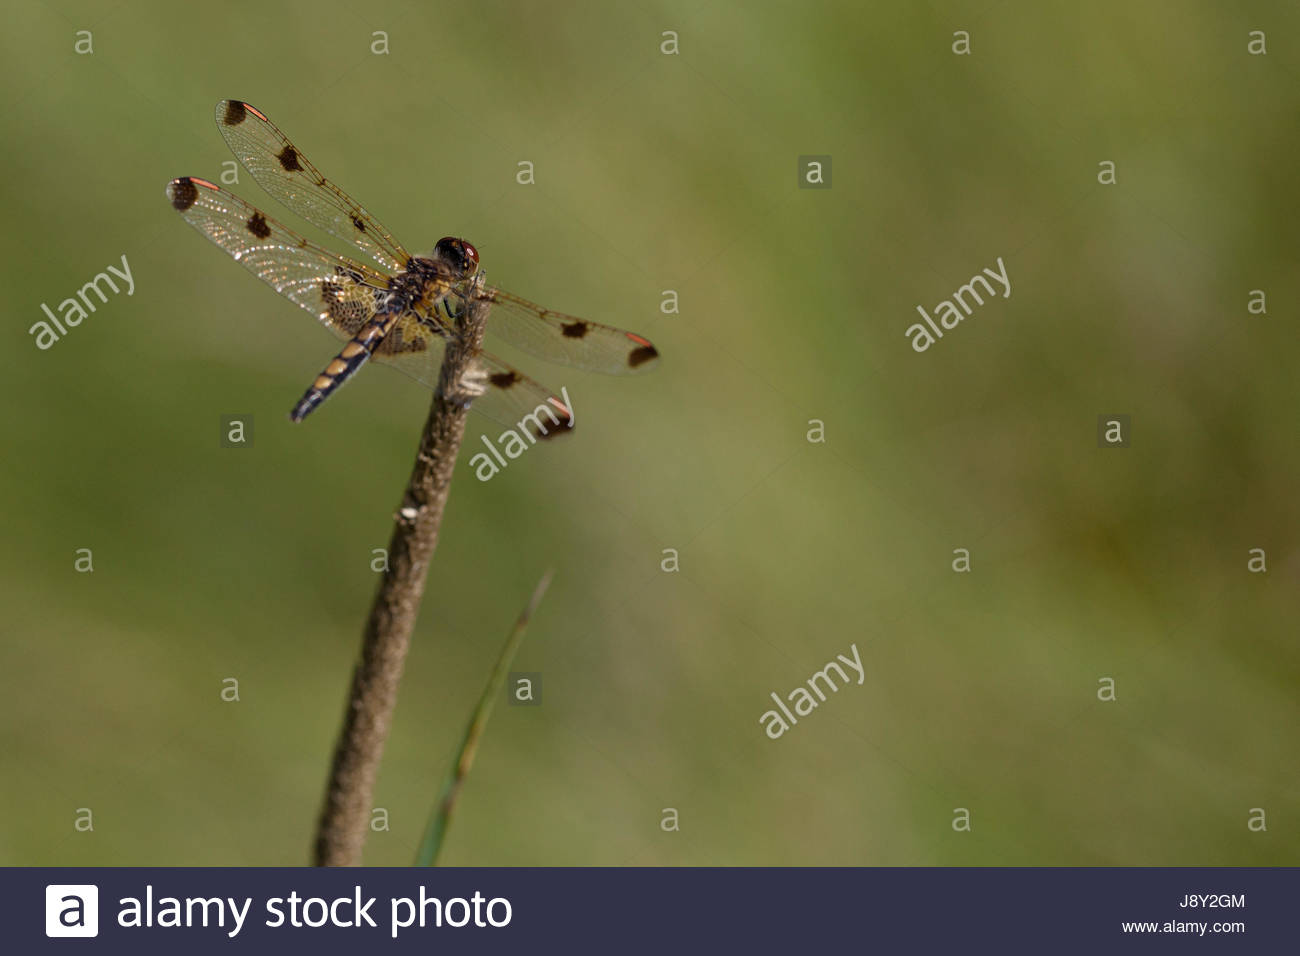 Pretty dragonfly clamped on a twig Isolated on a blurry 1300x956